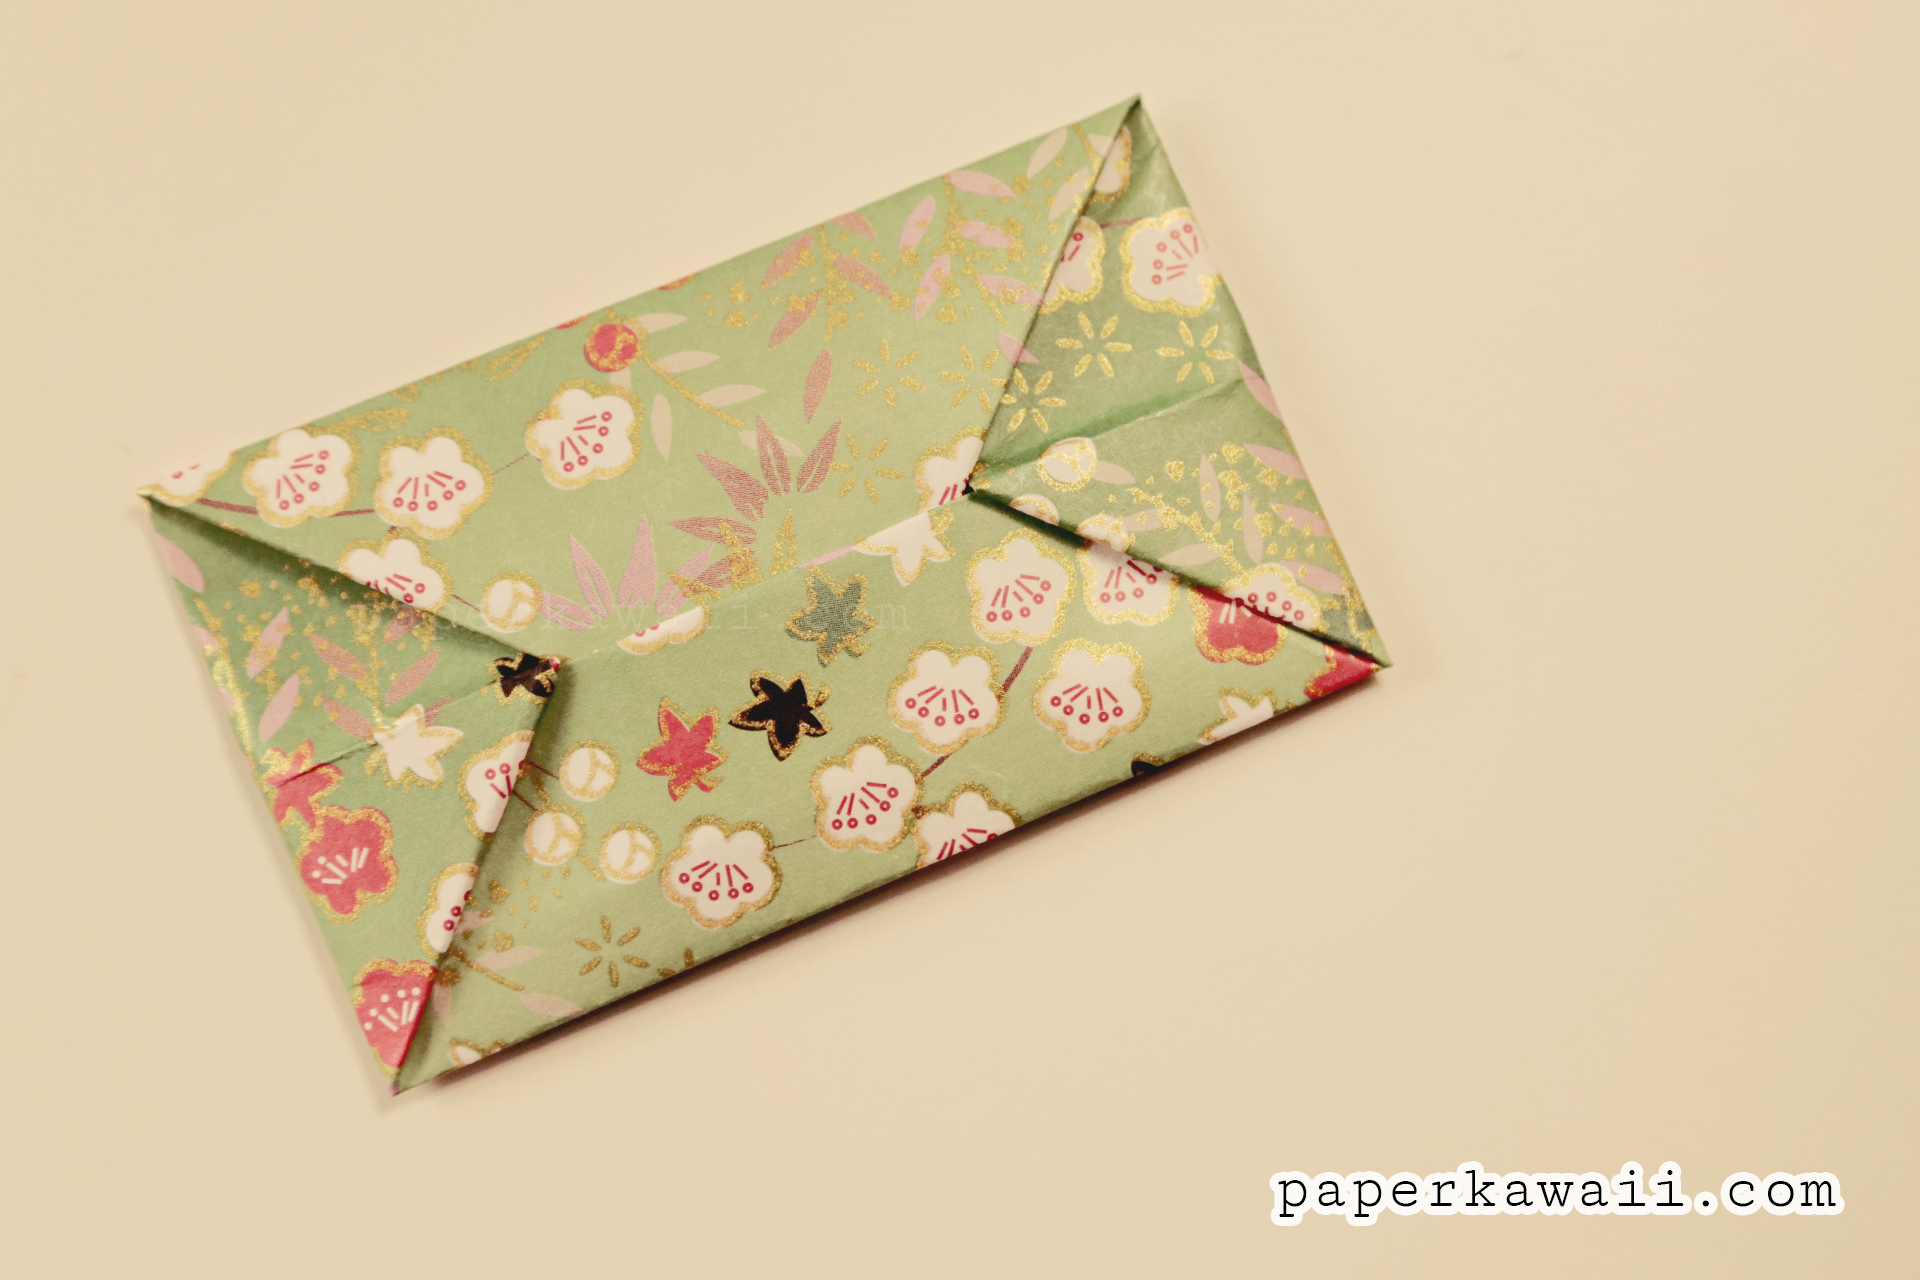 DIY EnvelopePage 1Paper Kawaii